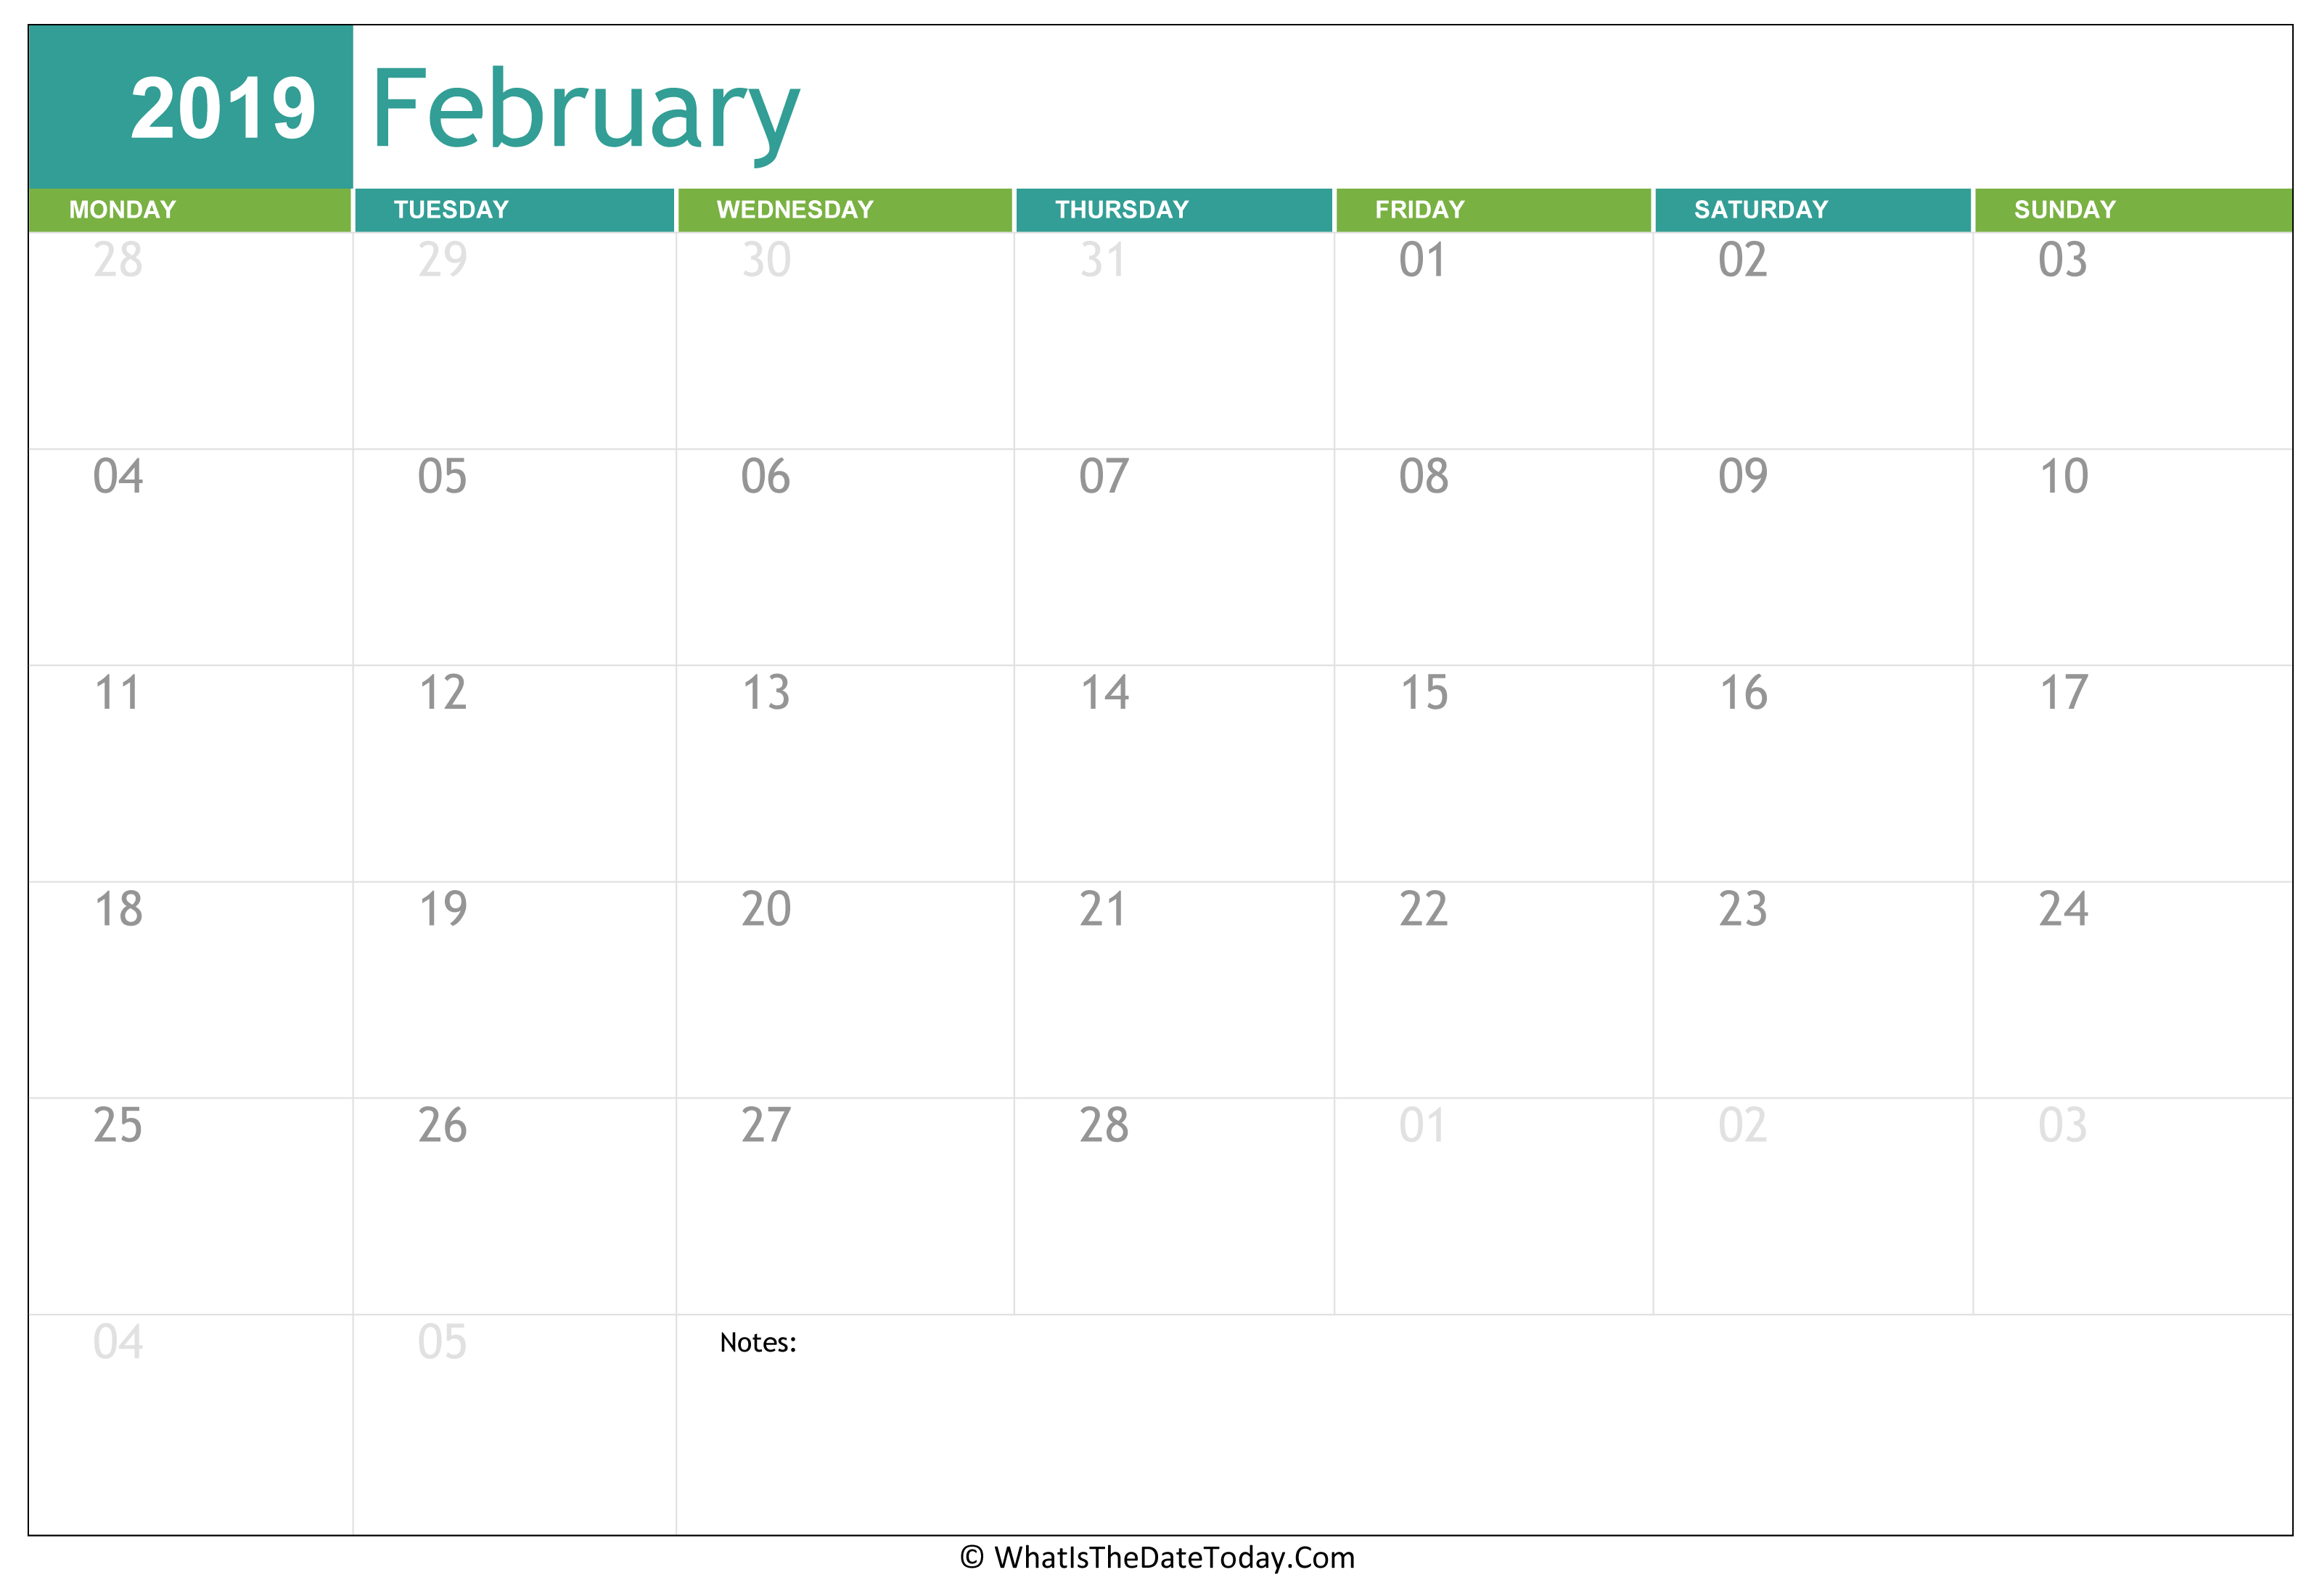 February Calendar 2019.Fillable February Calendar 2019 Whatisthedatetoday Com